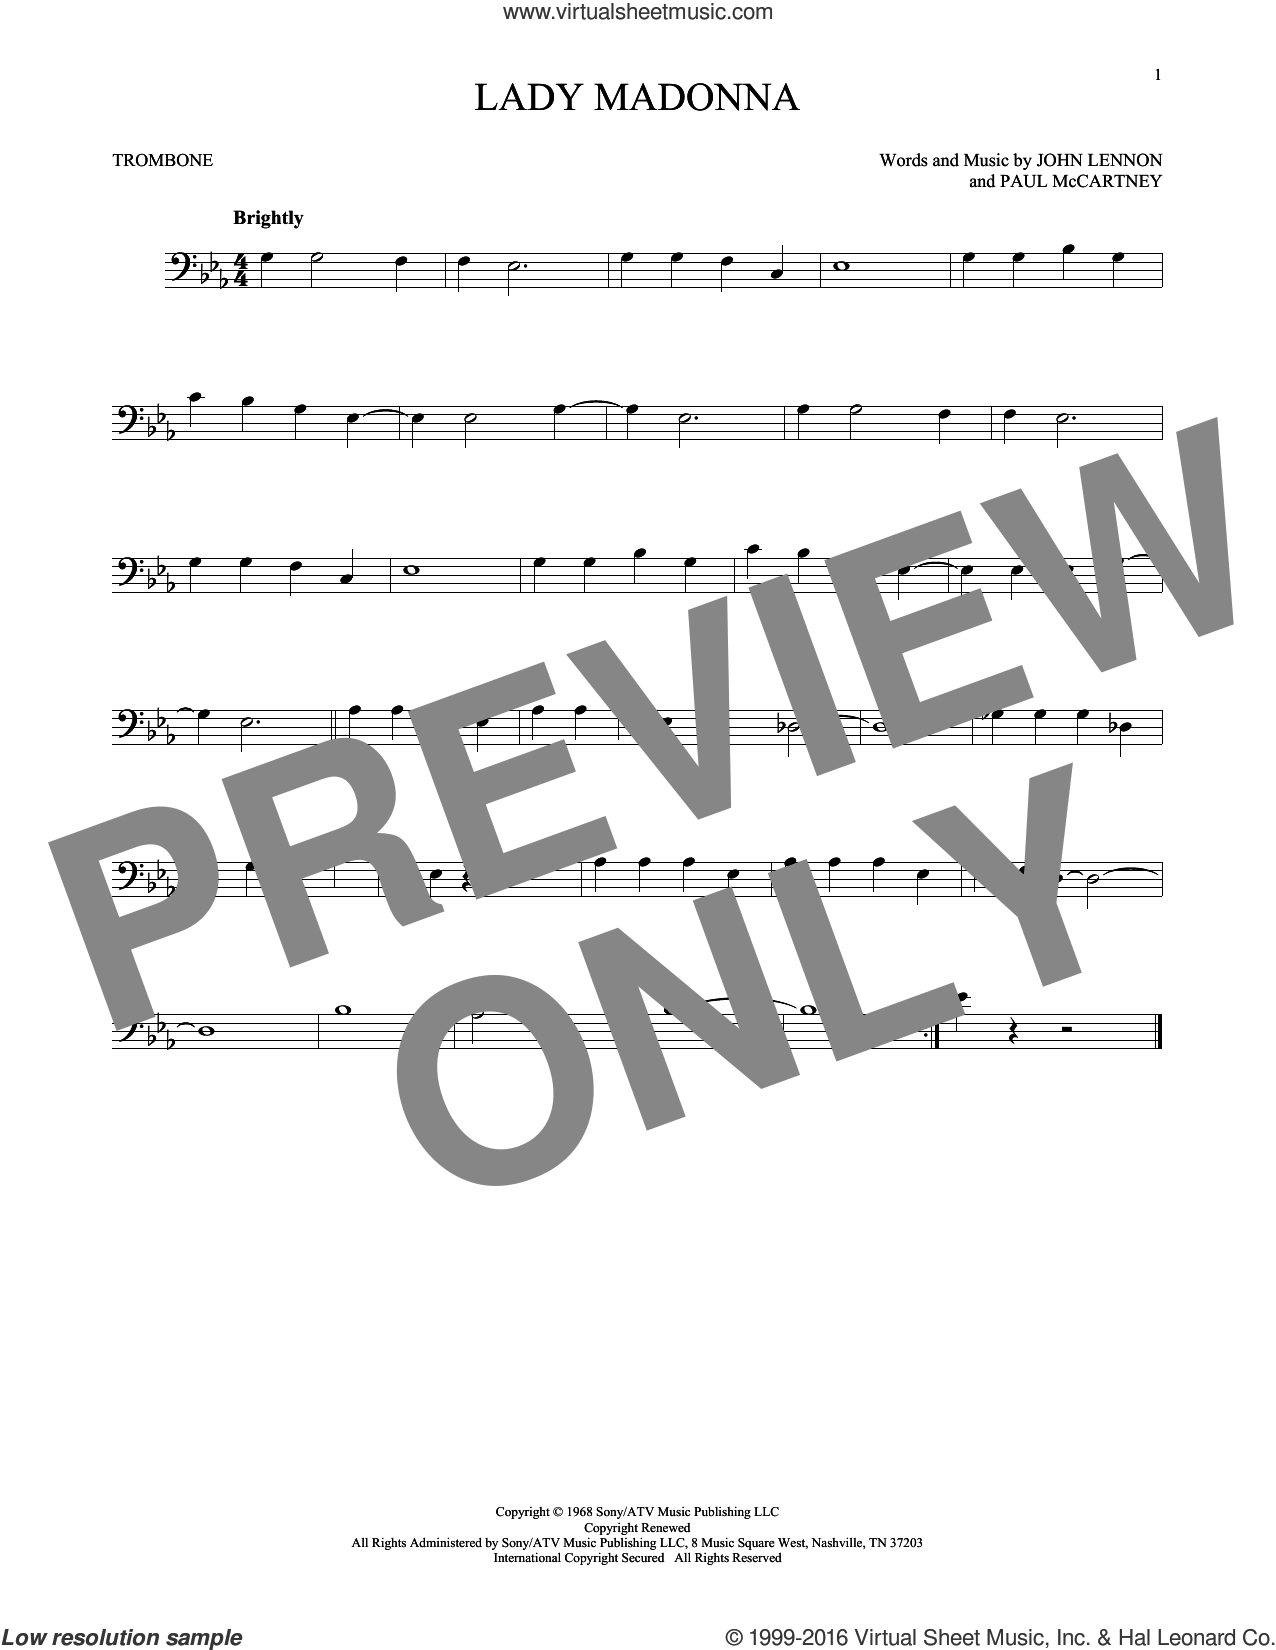 Lady Madonna sheet music for trombone solo by The Beatles, John Lennon and Paul McCartney, intermediate skill level